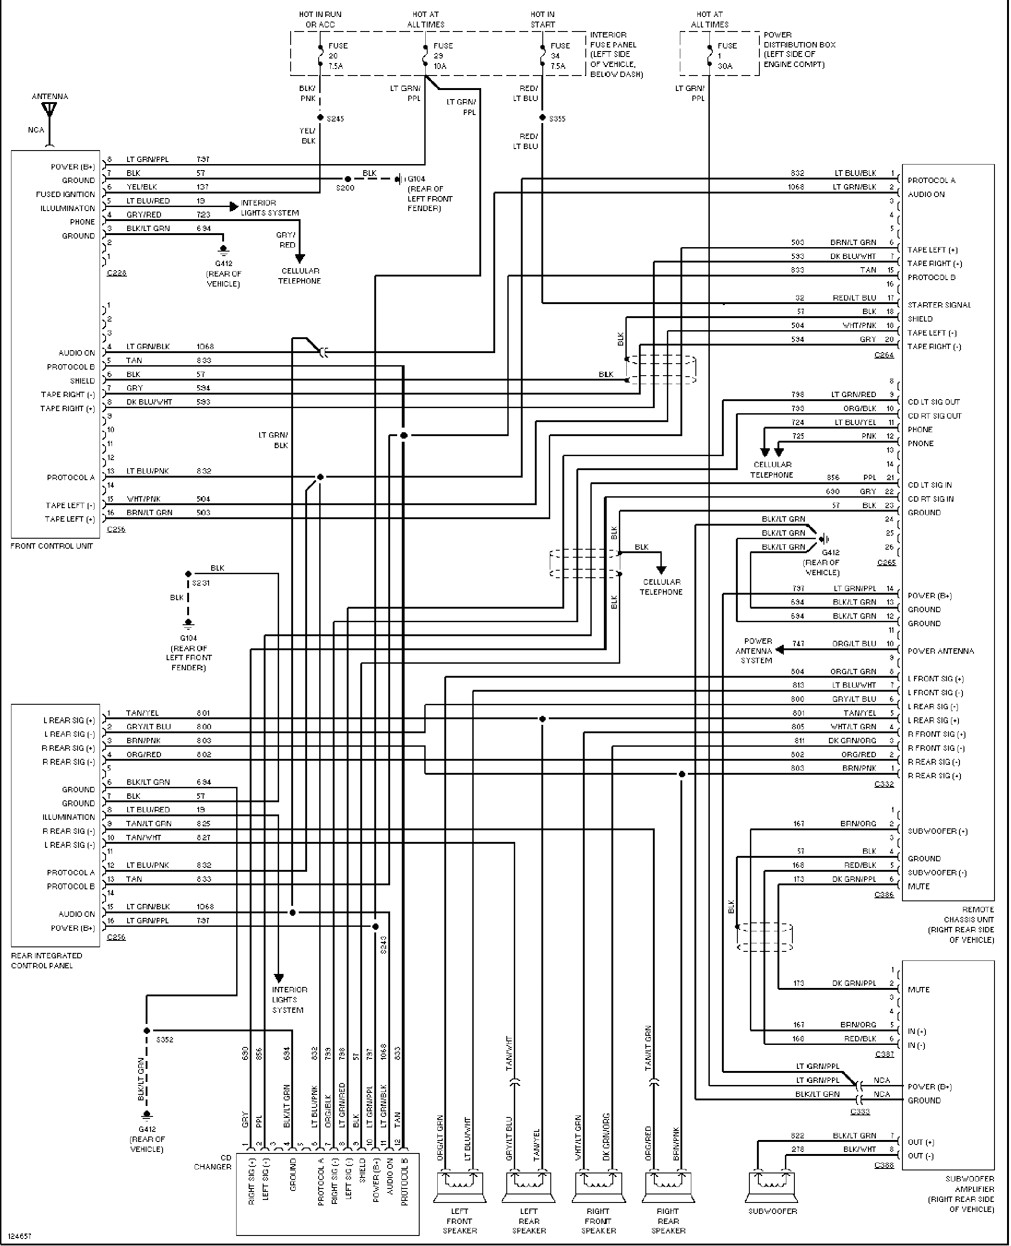 2007 F150 Radio Wiring Diagram from mainetreasurechest.com